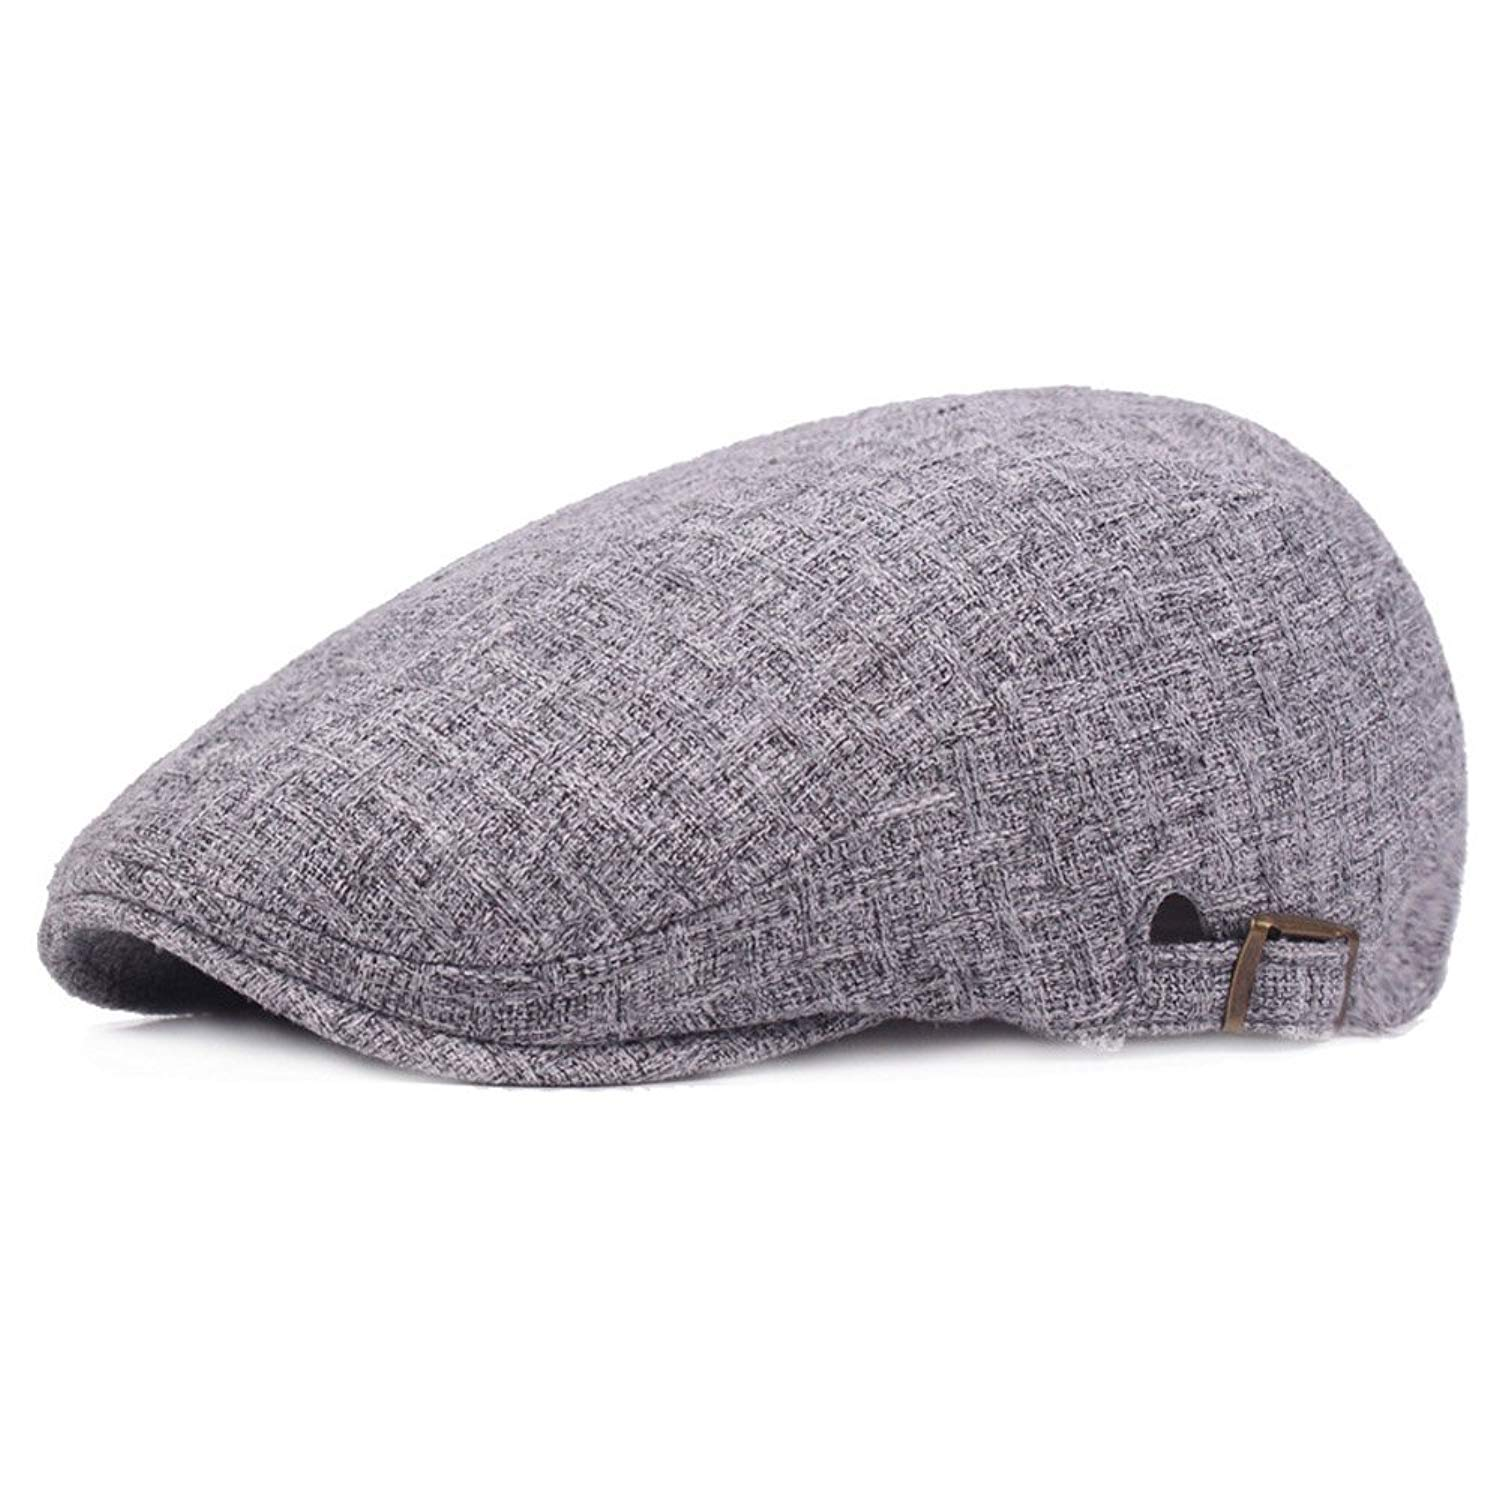 b6a38a634 Cheap Linen Flat Cap, find Linen Flat Cap deals on line at Alibaba.com